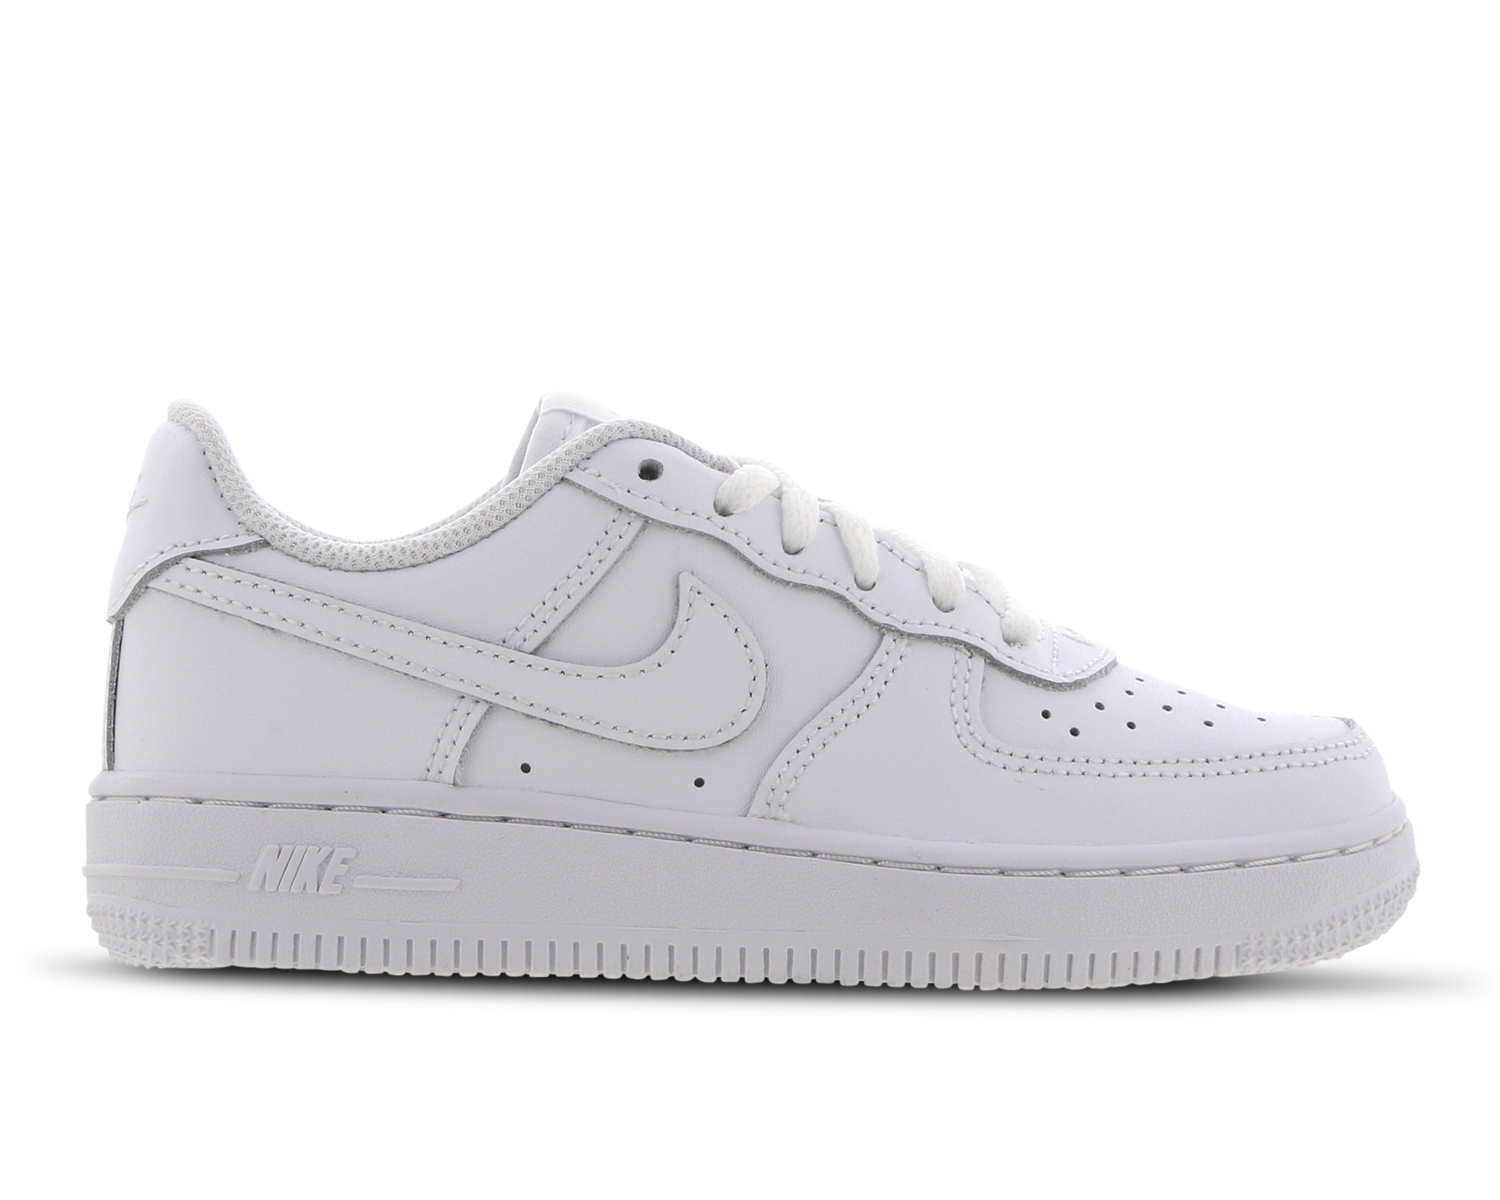 Nike Air Force 1 Low @ Footlocker